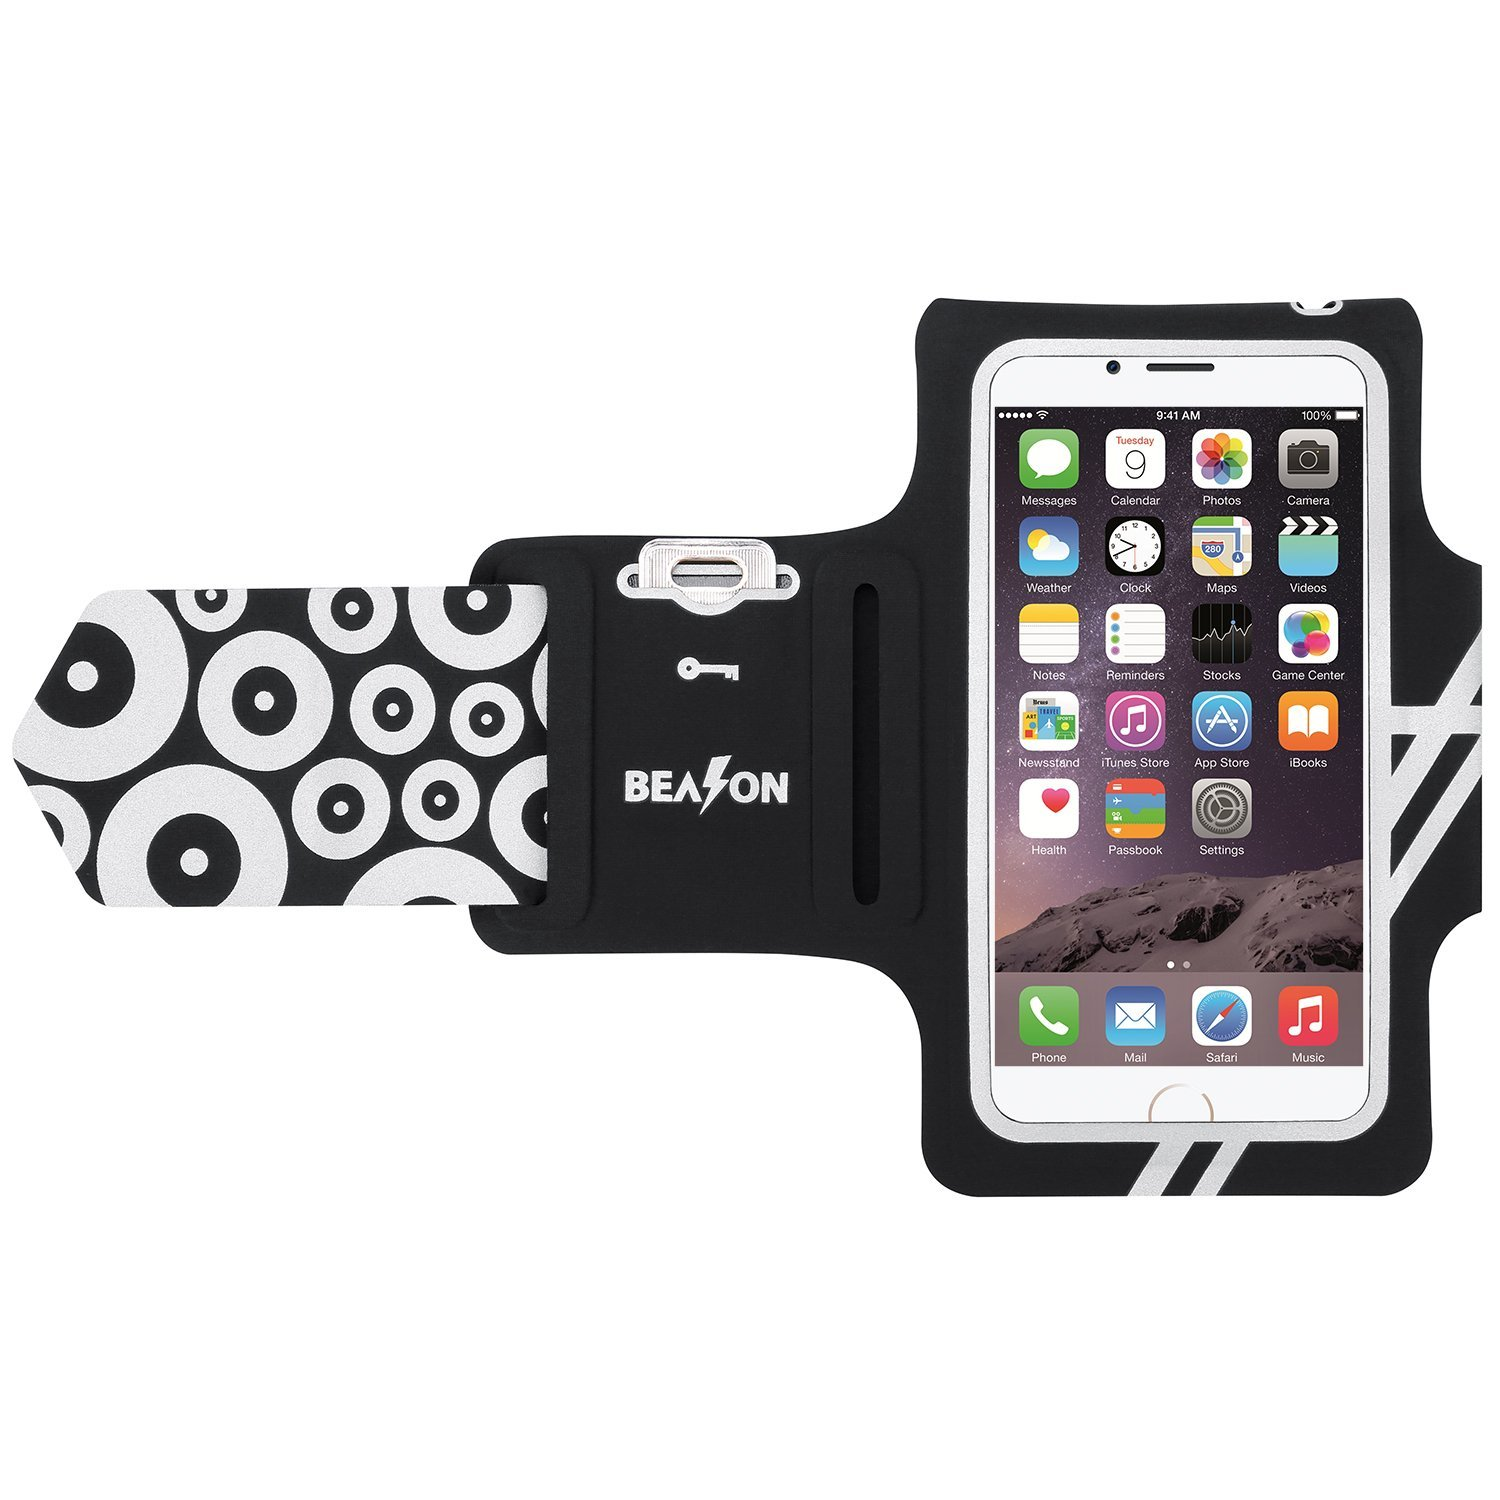 BEASON Running Armband, Waterproof Sports Workout Armband with Key Pocket for iPhone 7/6/6s, Black